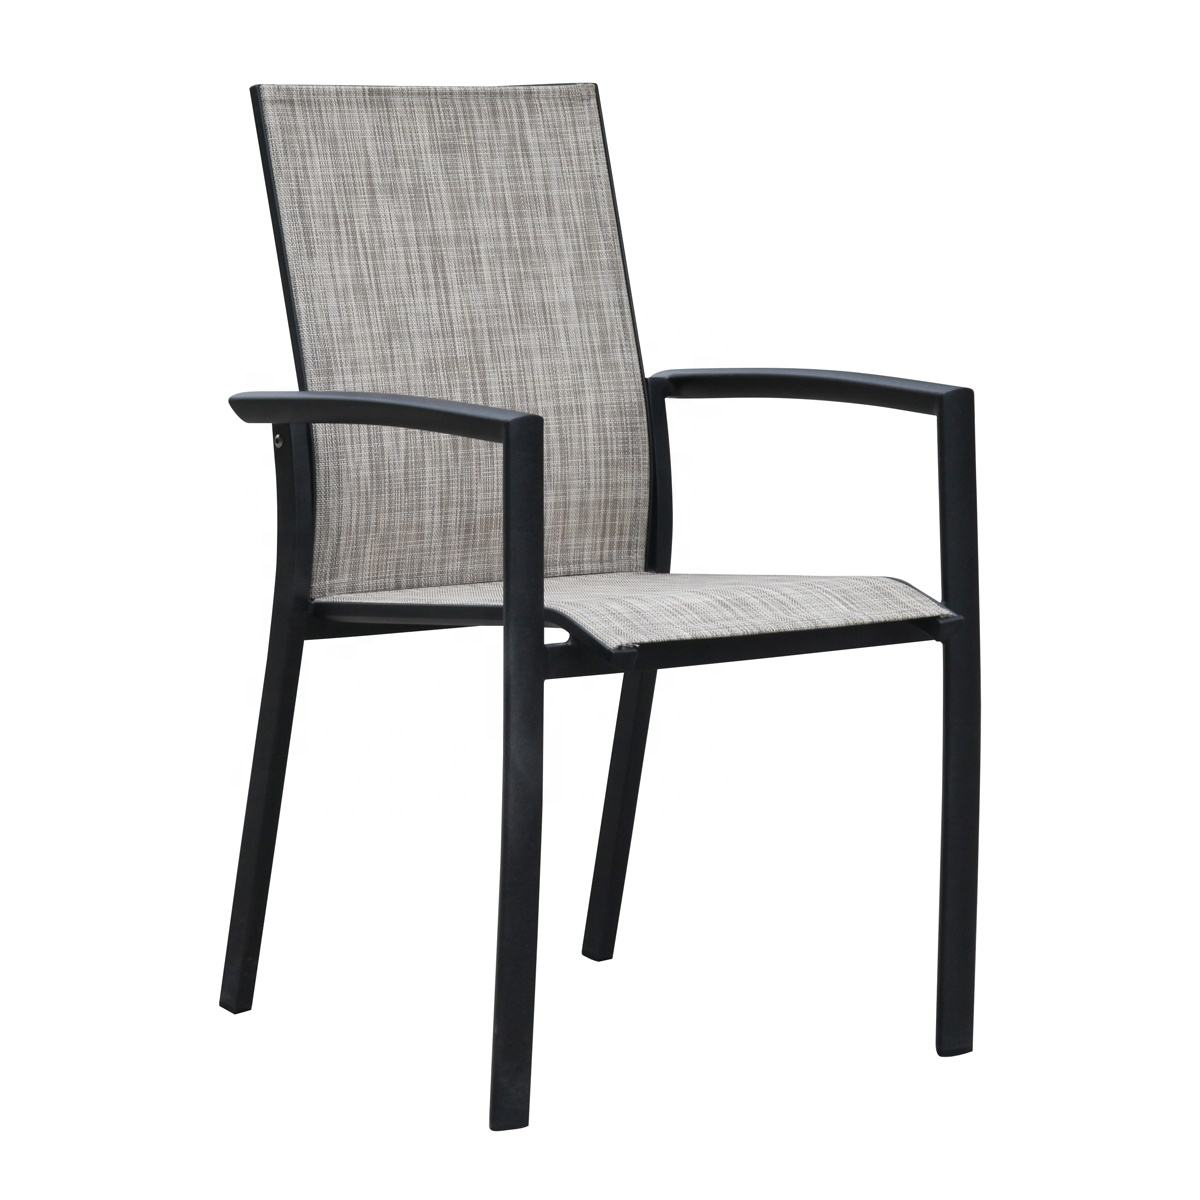 Aluminum Patio Outdoor Dining Acapulco Chair for Hotel